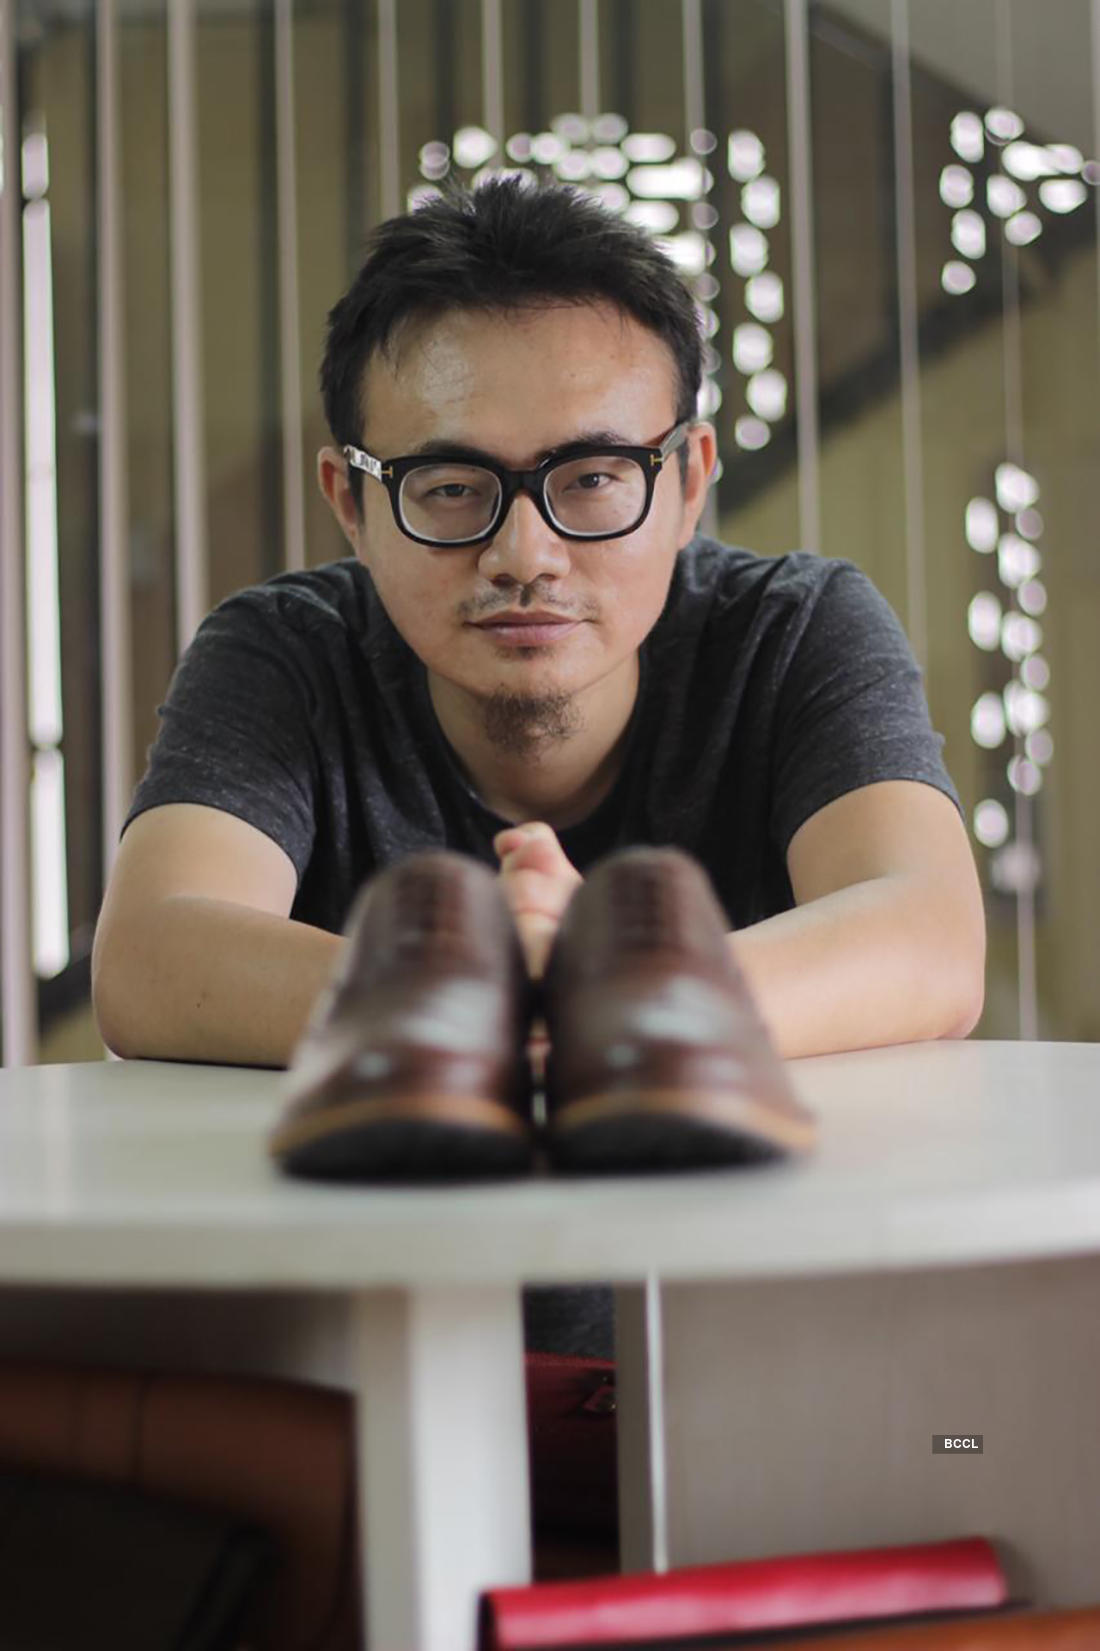 Know more about Ahmed Dulla & how he redefined the Shoe Industry in Nepal with a simple Google Search...